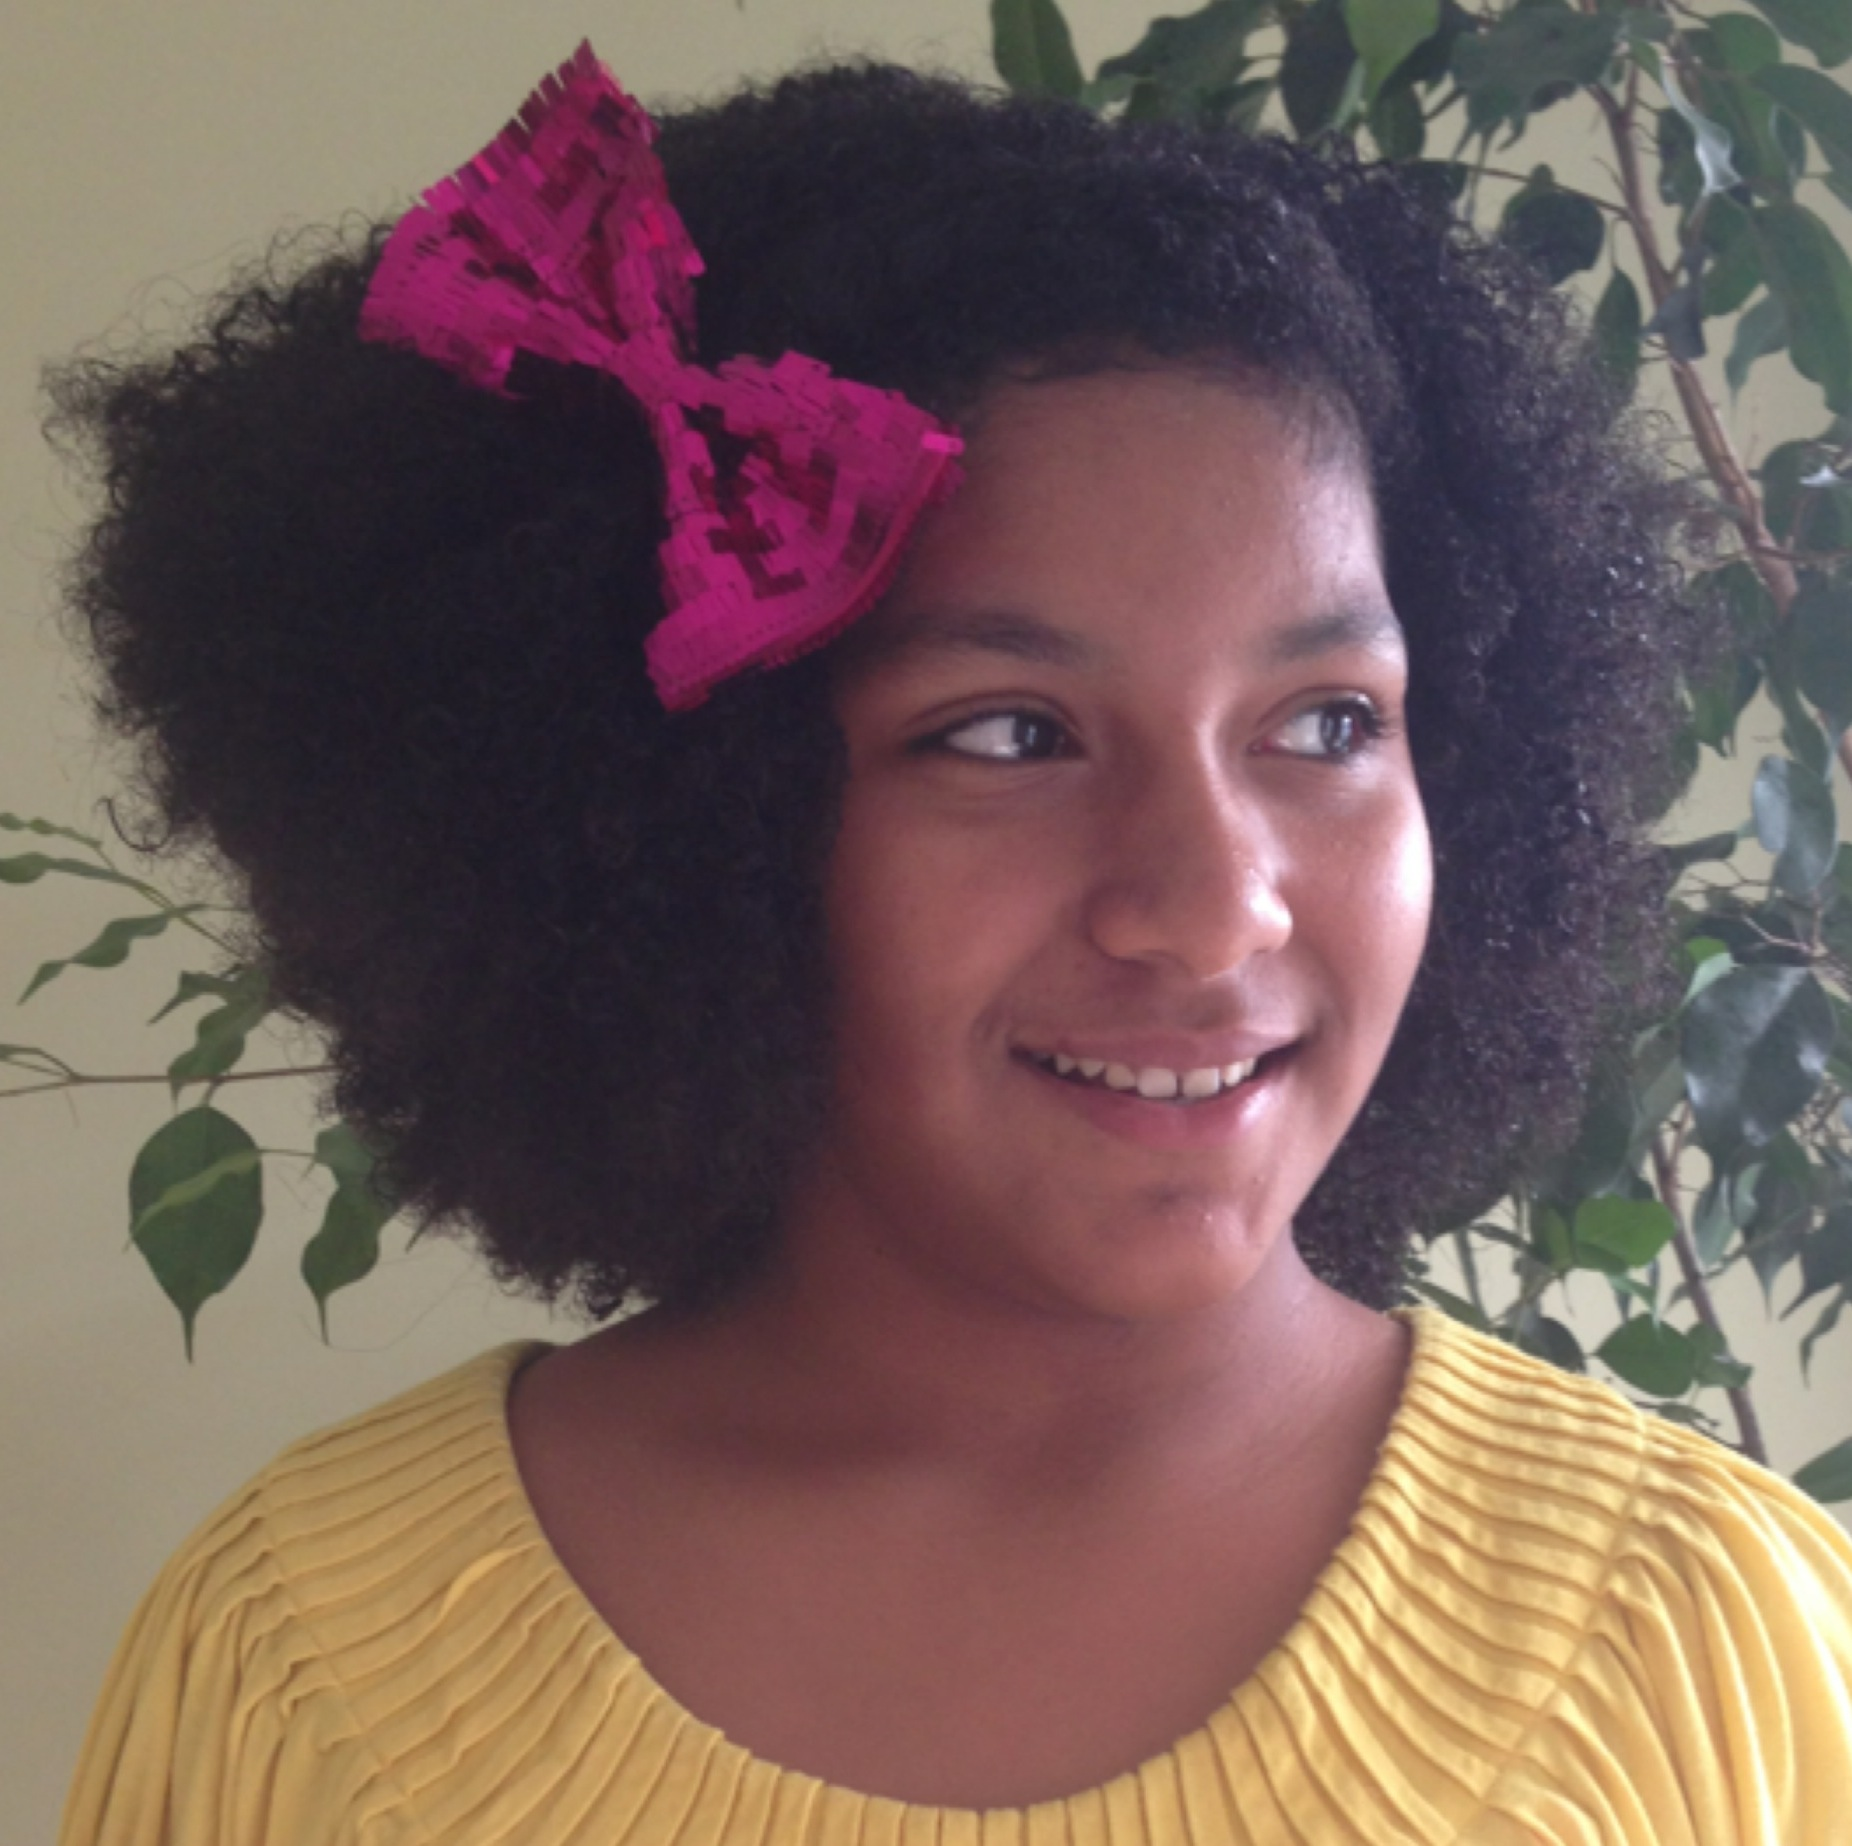 Curls-Understood-kids-hair-moisturize